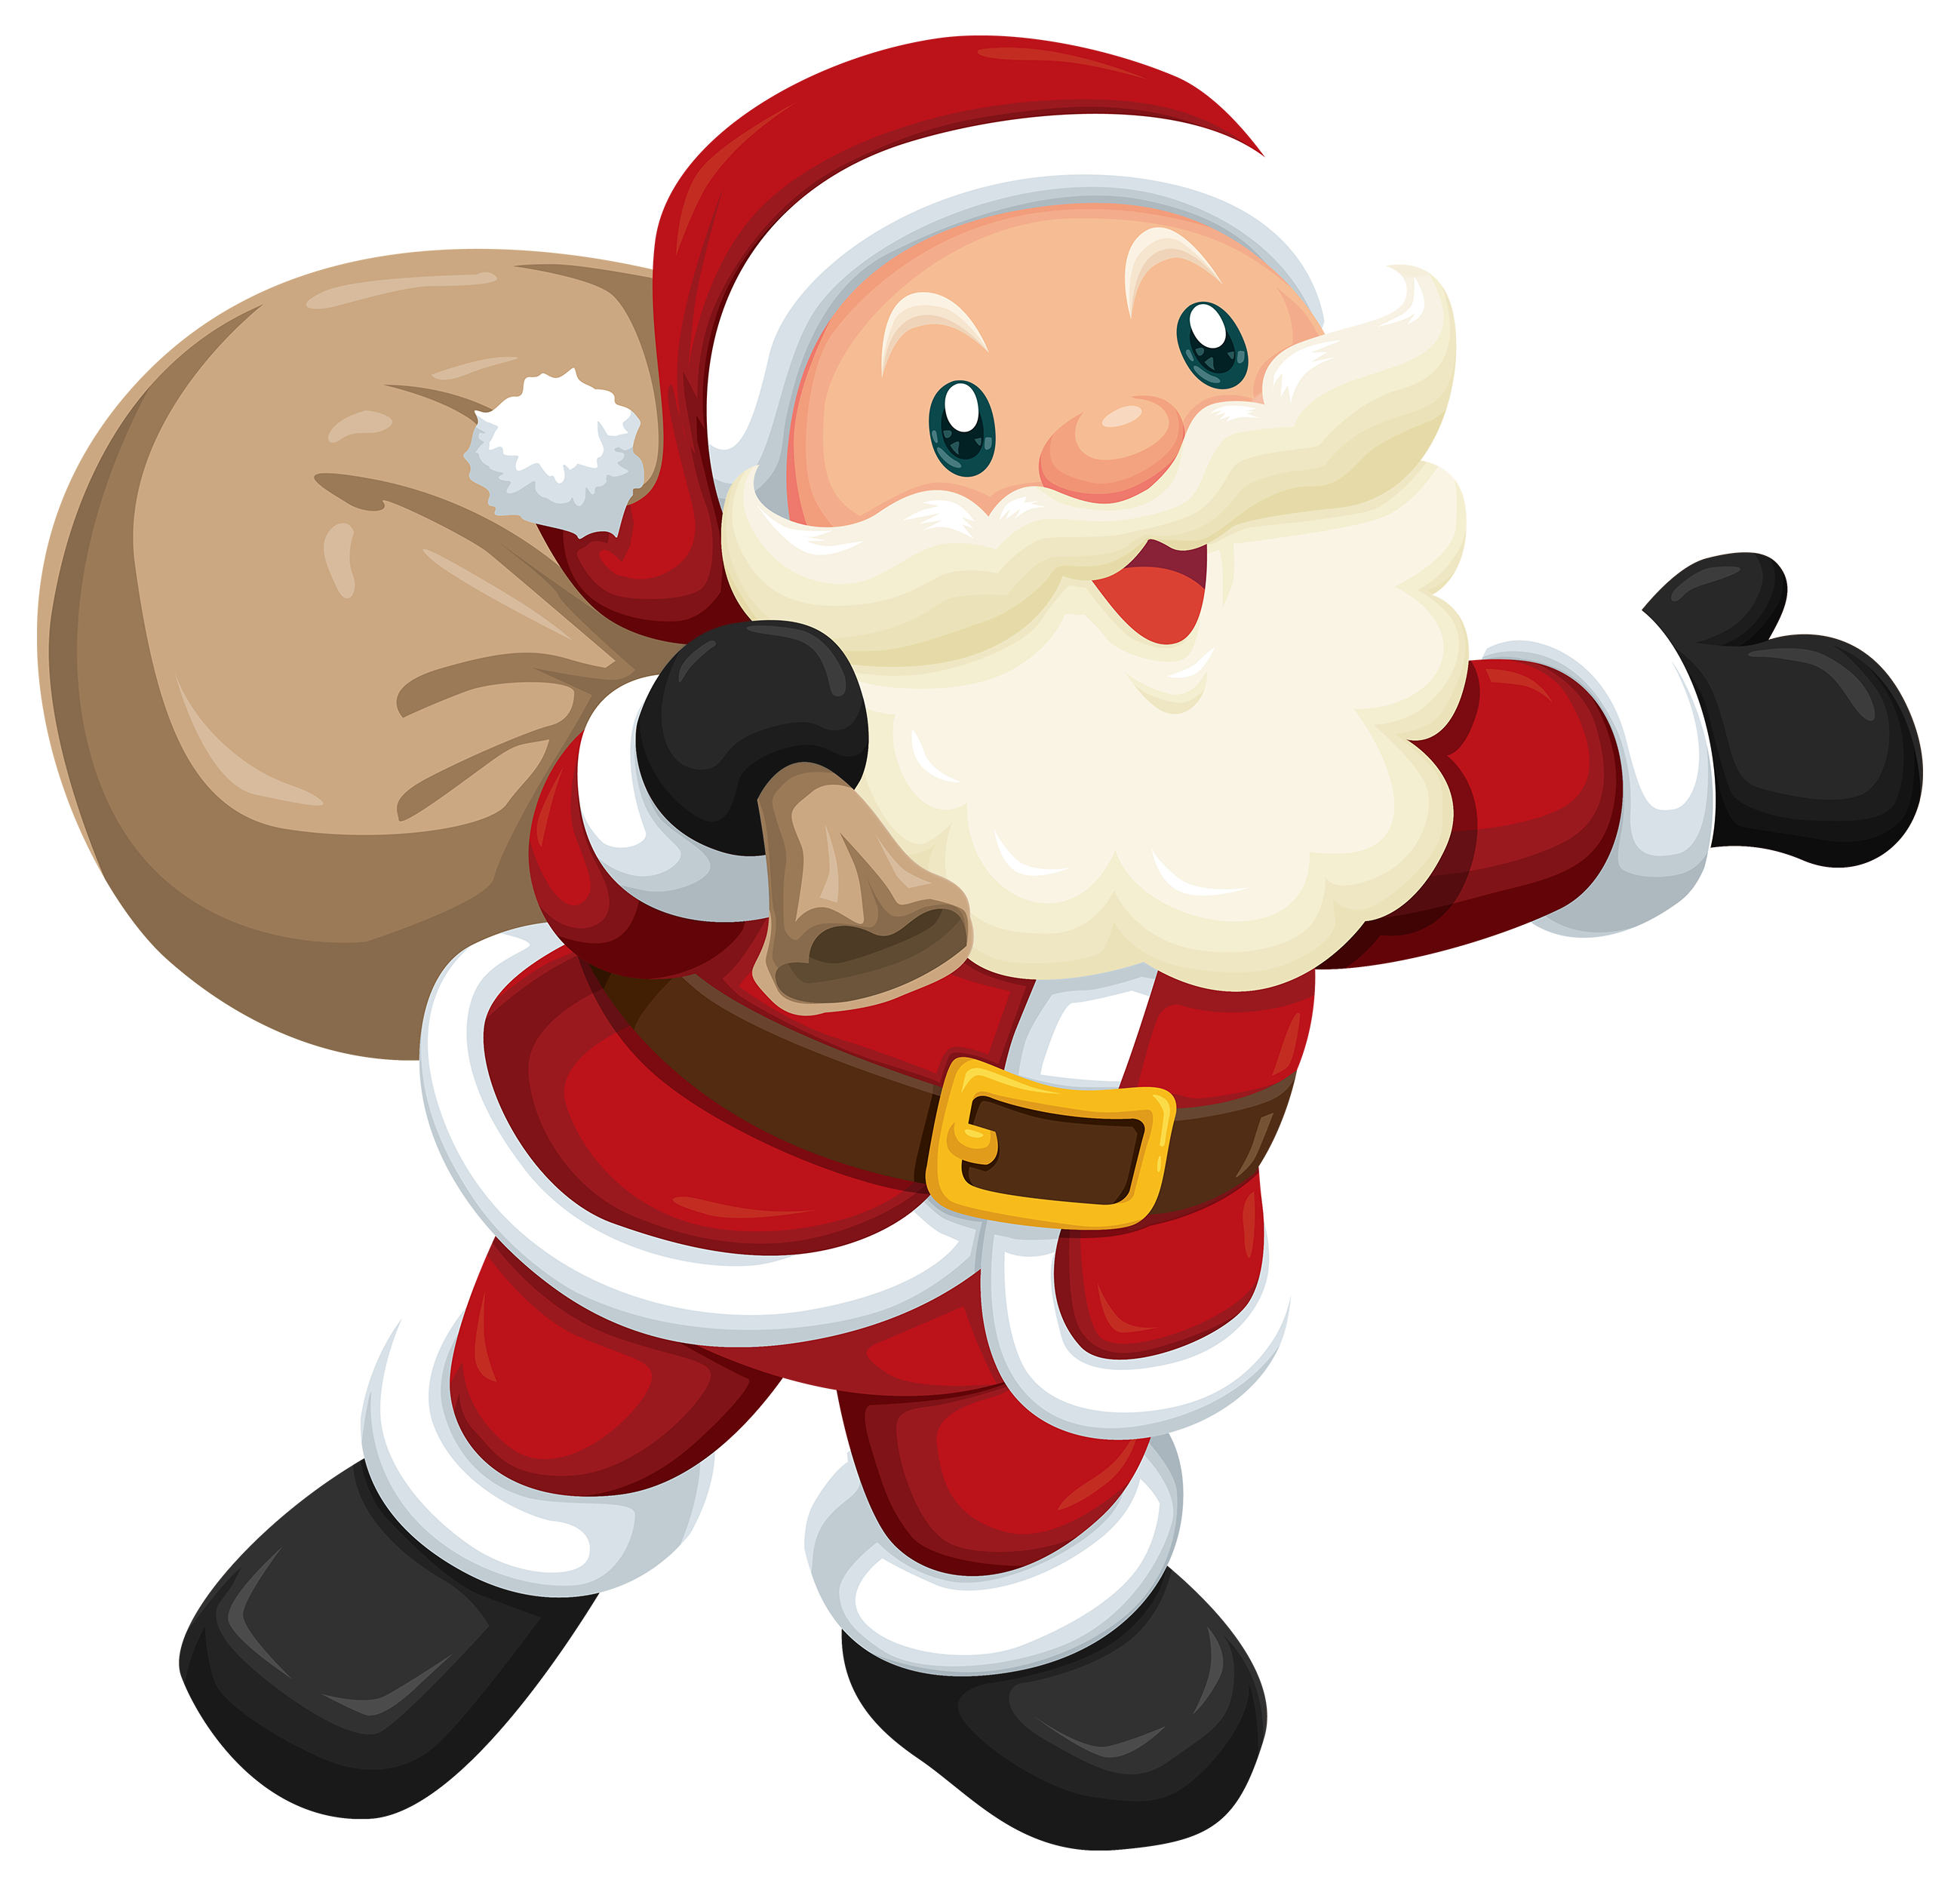 Cute santa png best. Missions clipart secret pal